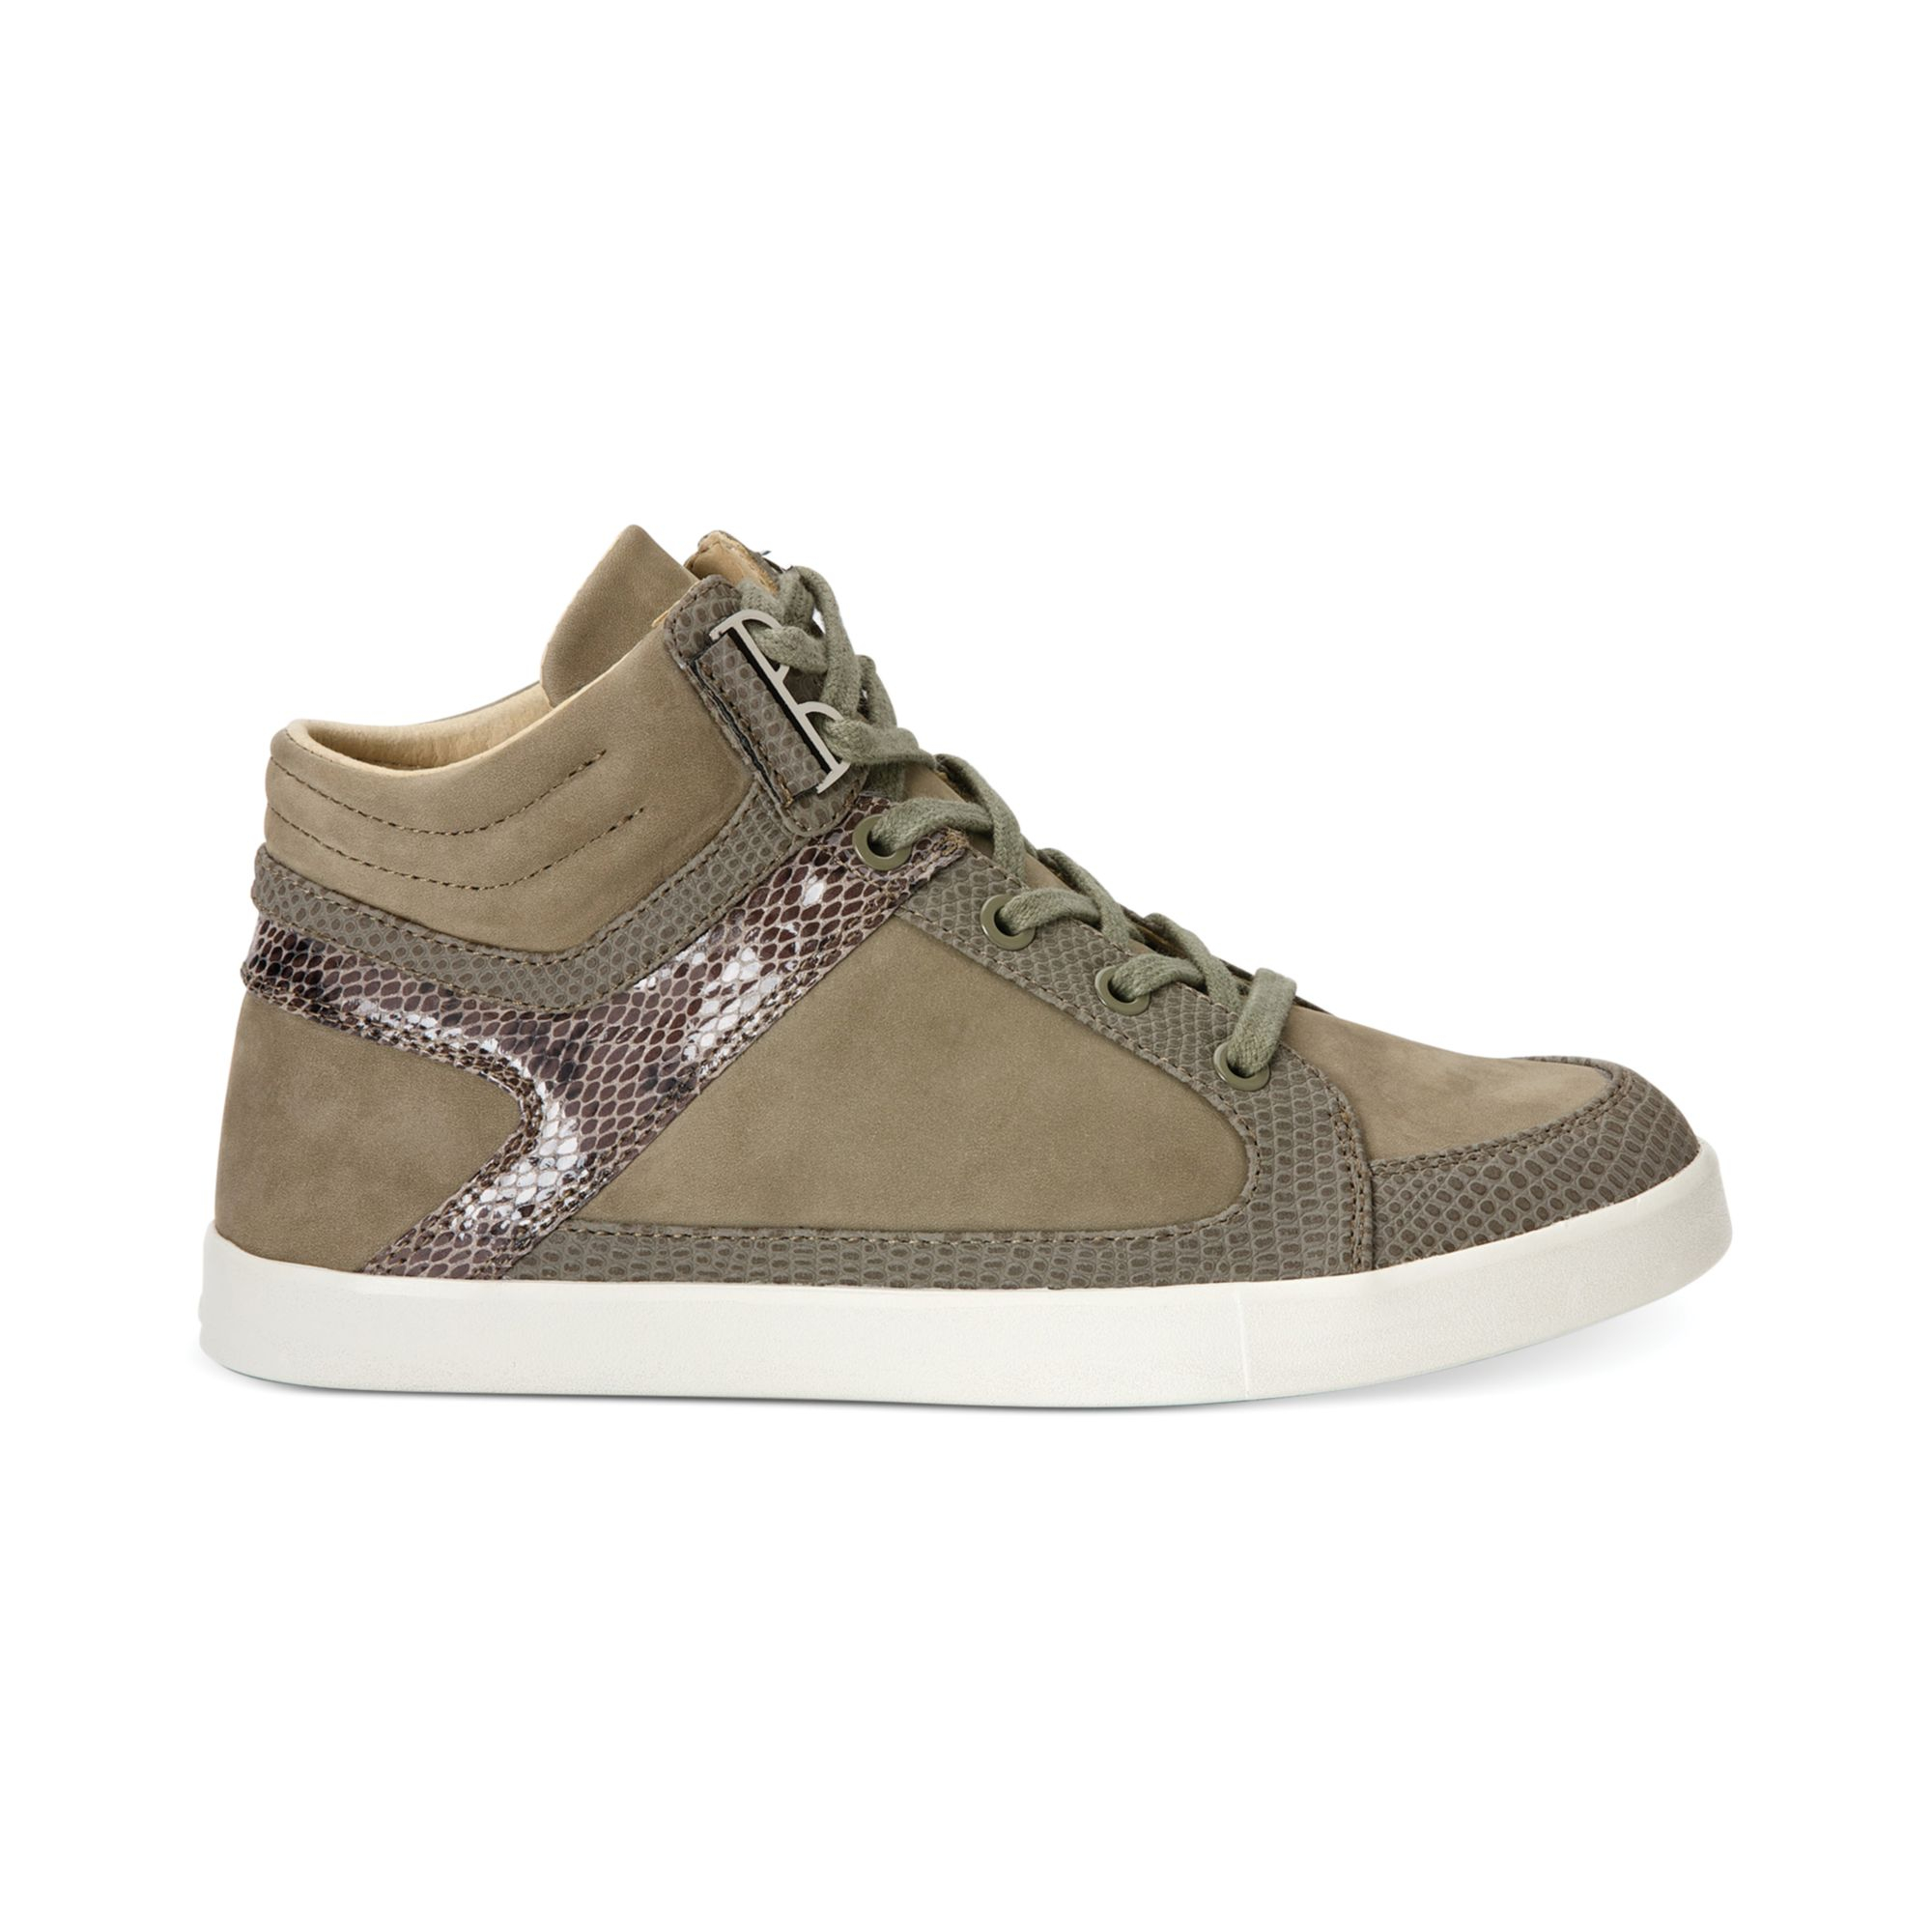 calvin klein women 39 s lyda high top sneakers in green olive lyst. Black Bedroom Furniture Sets. Home Design Ideas